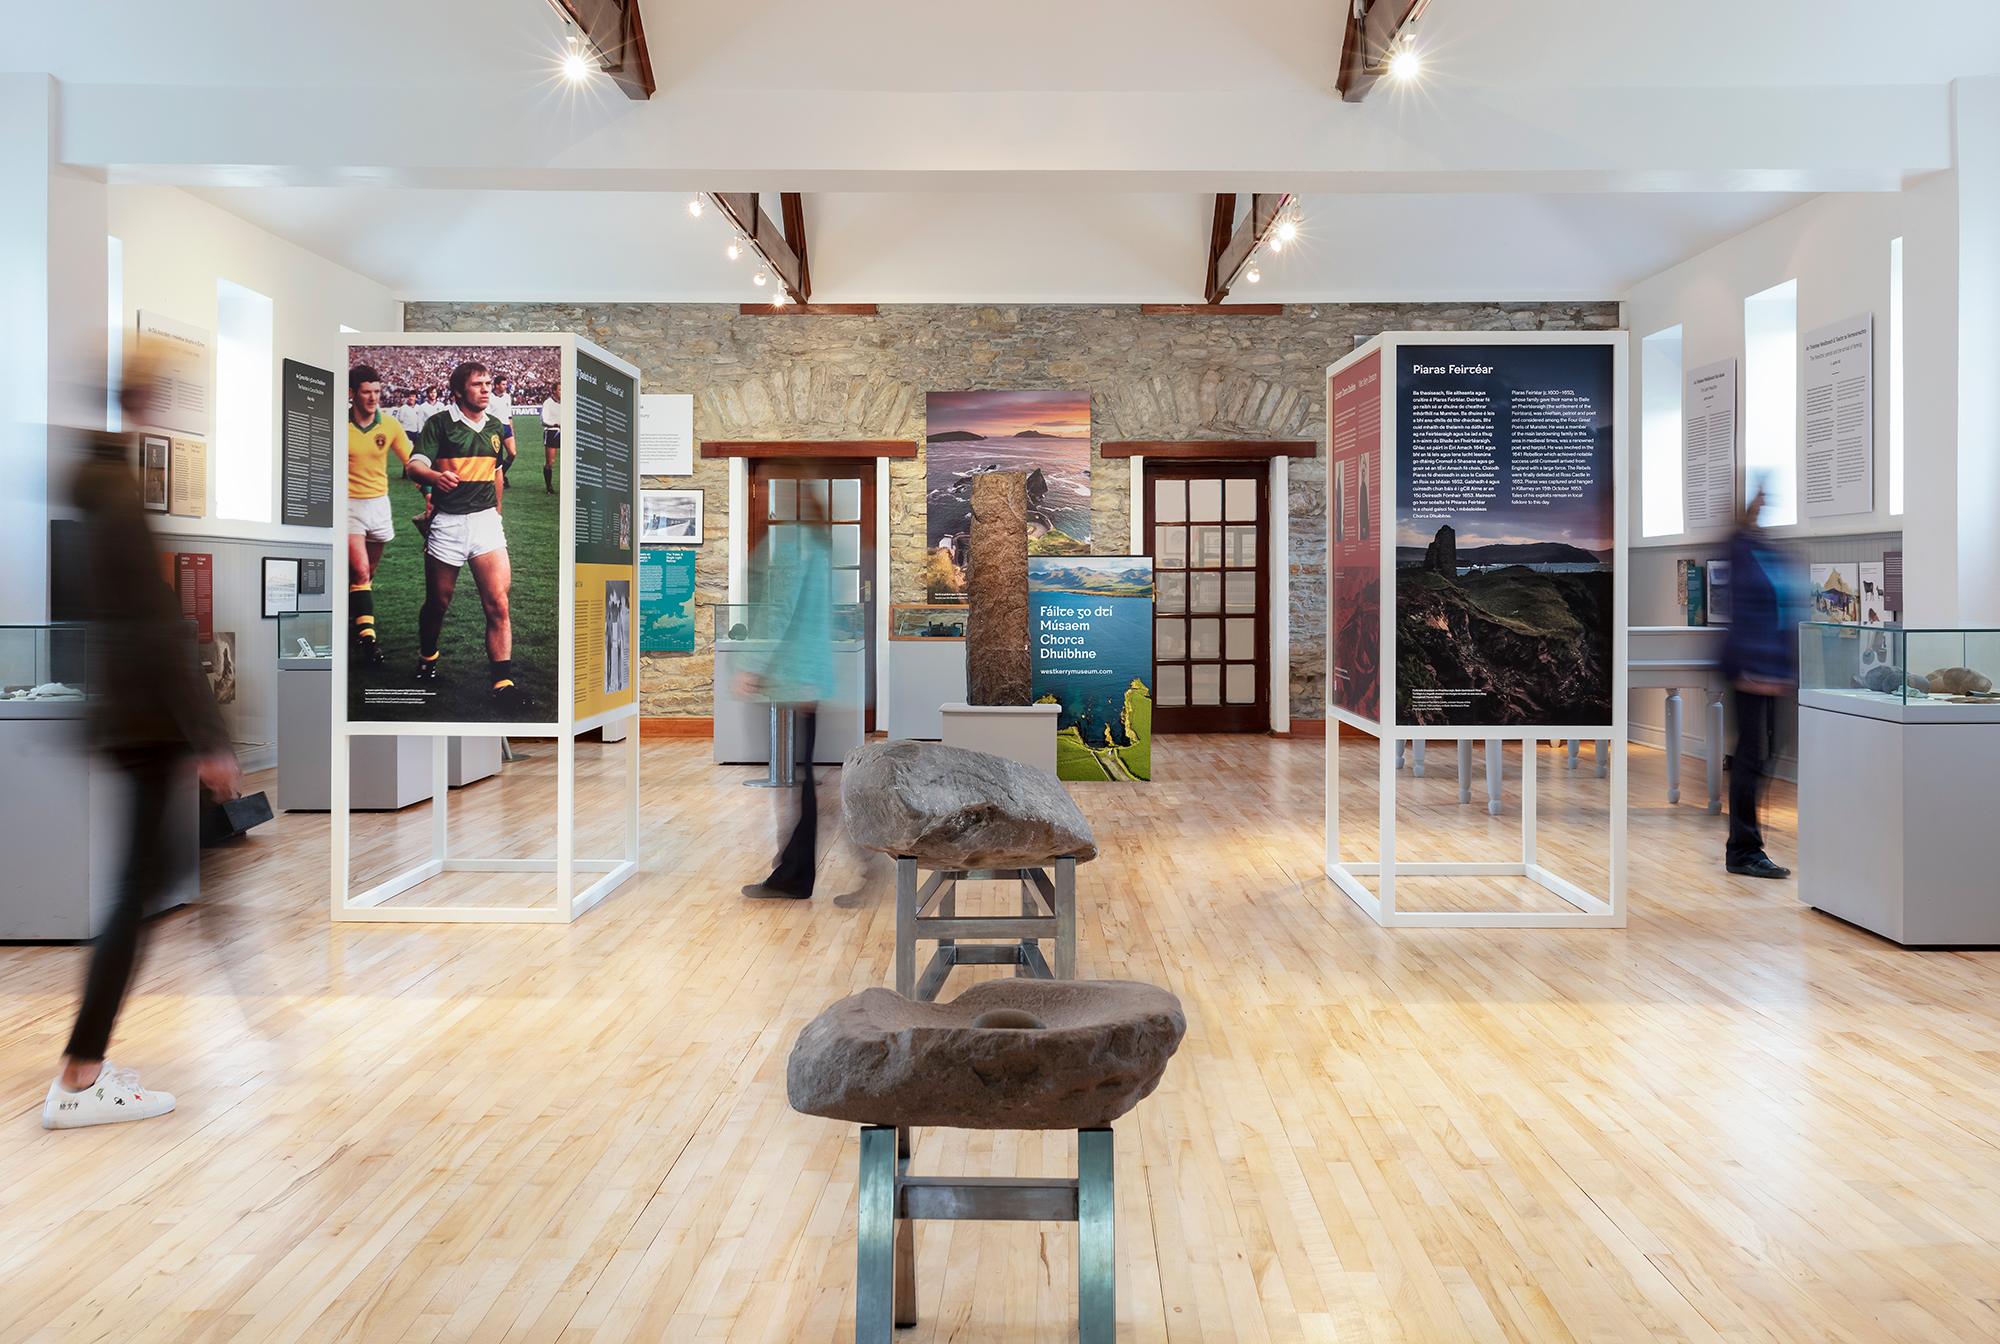 Cover image: Dingle Peninsula Museum